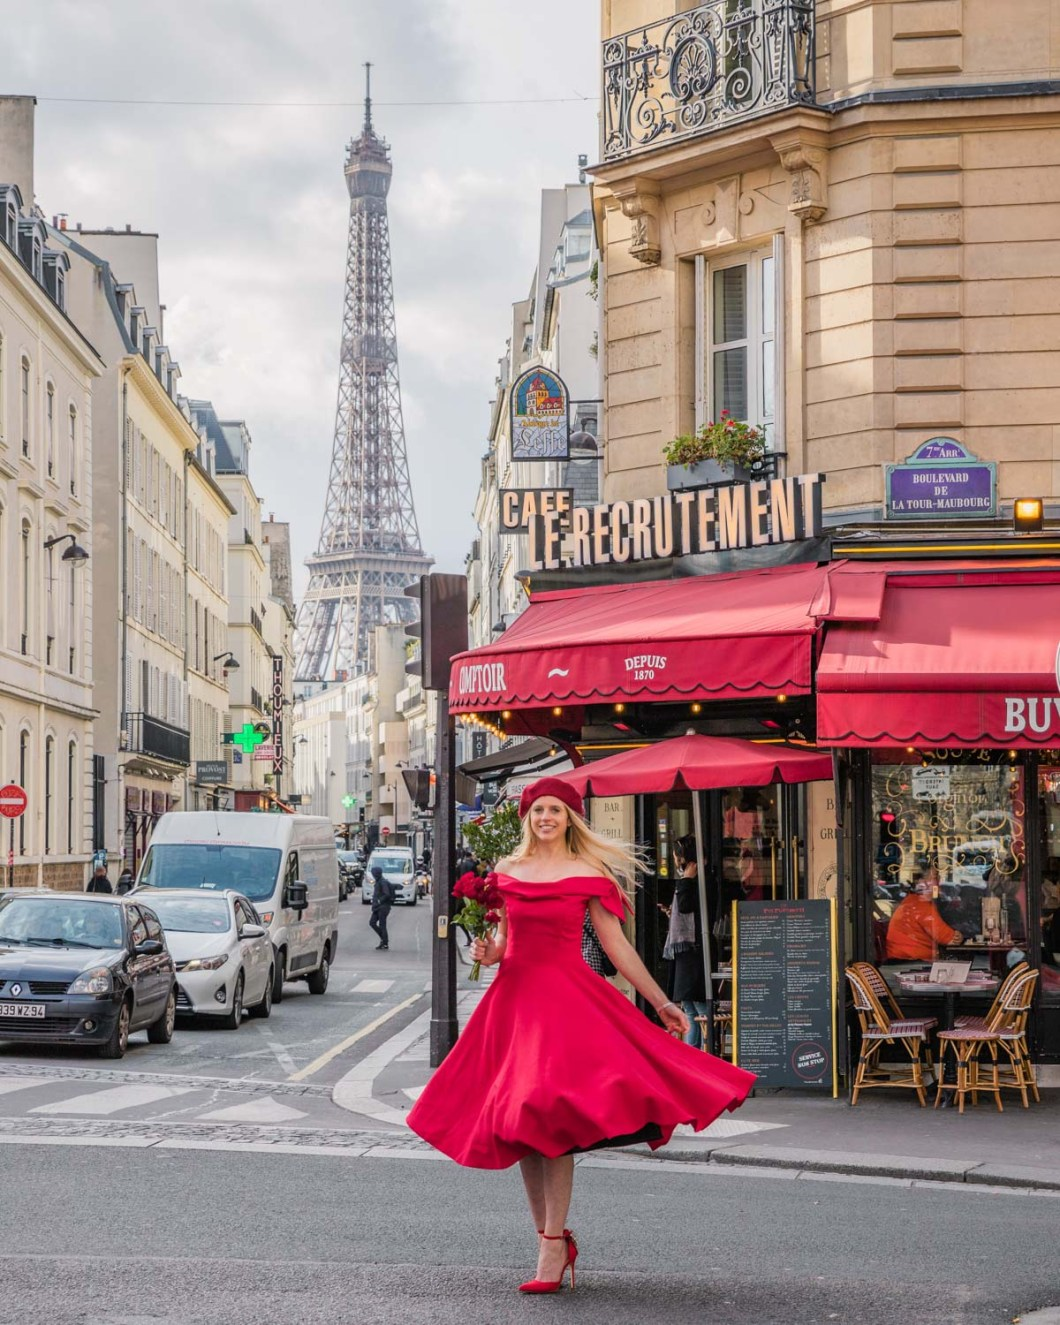 Le Recrutement Café with the Eiffel Tower